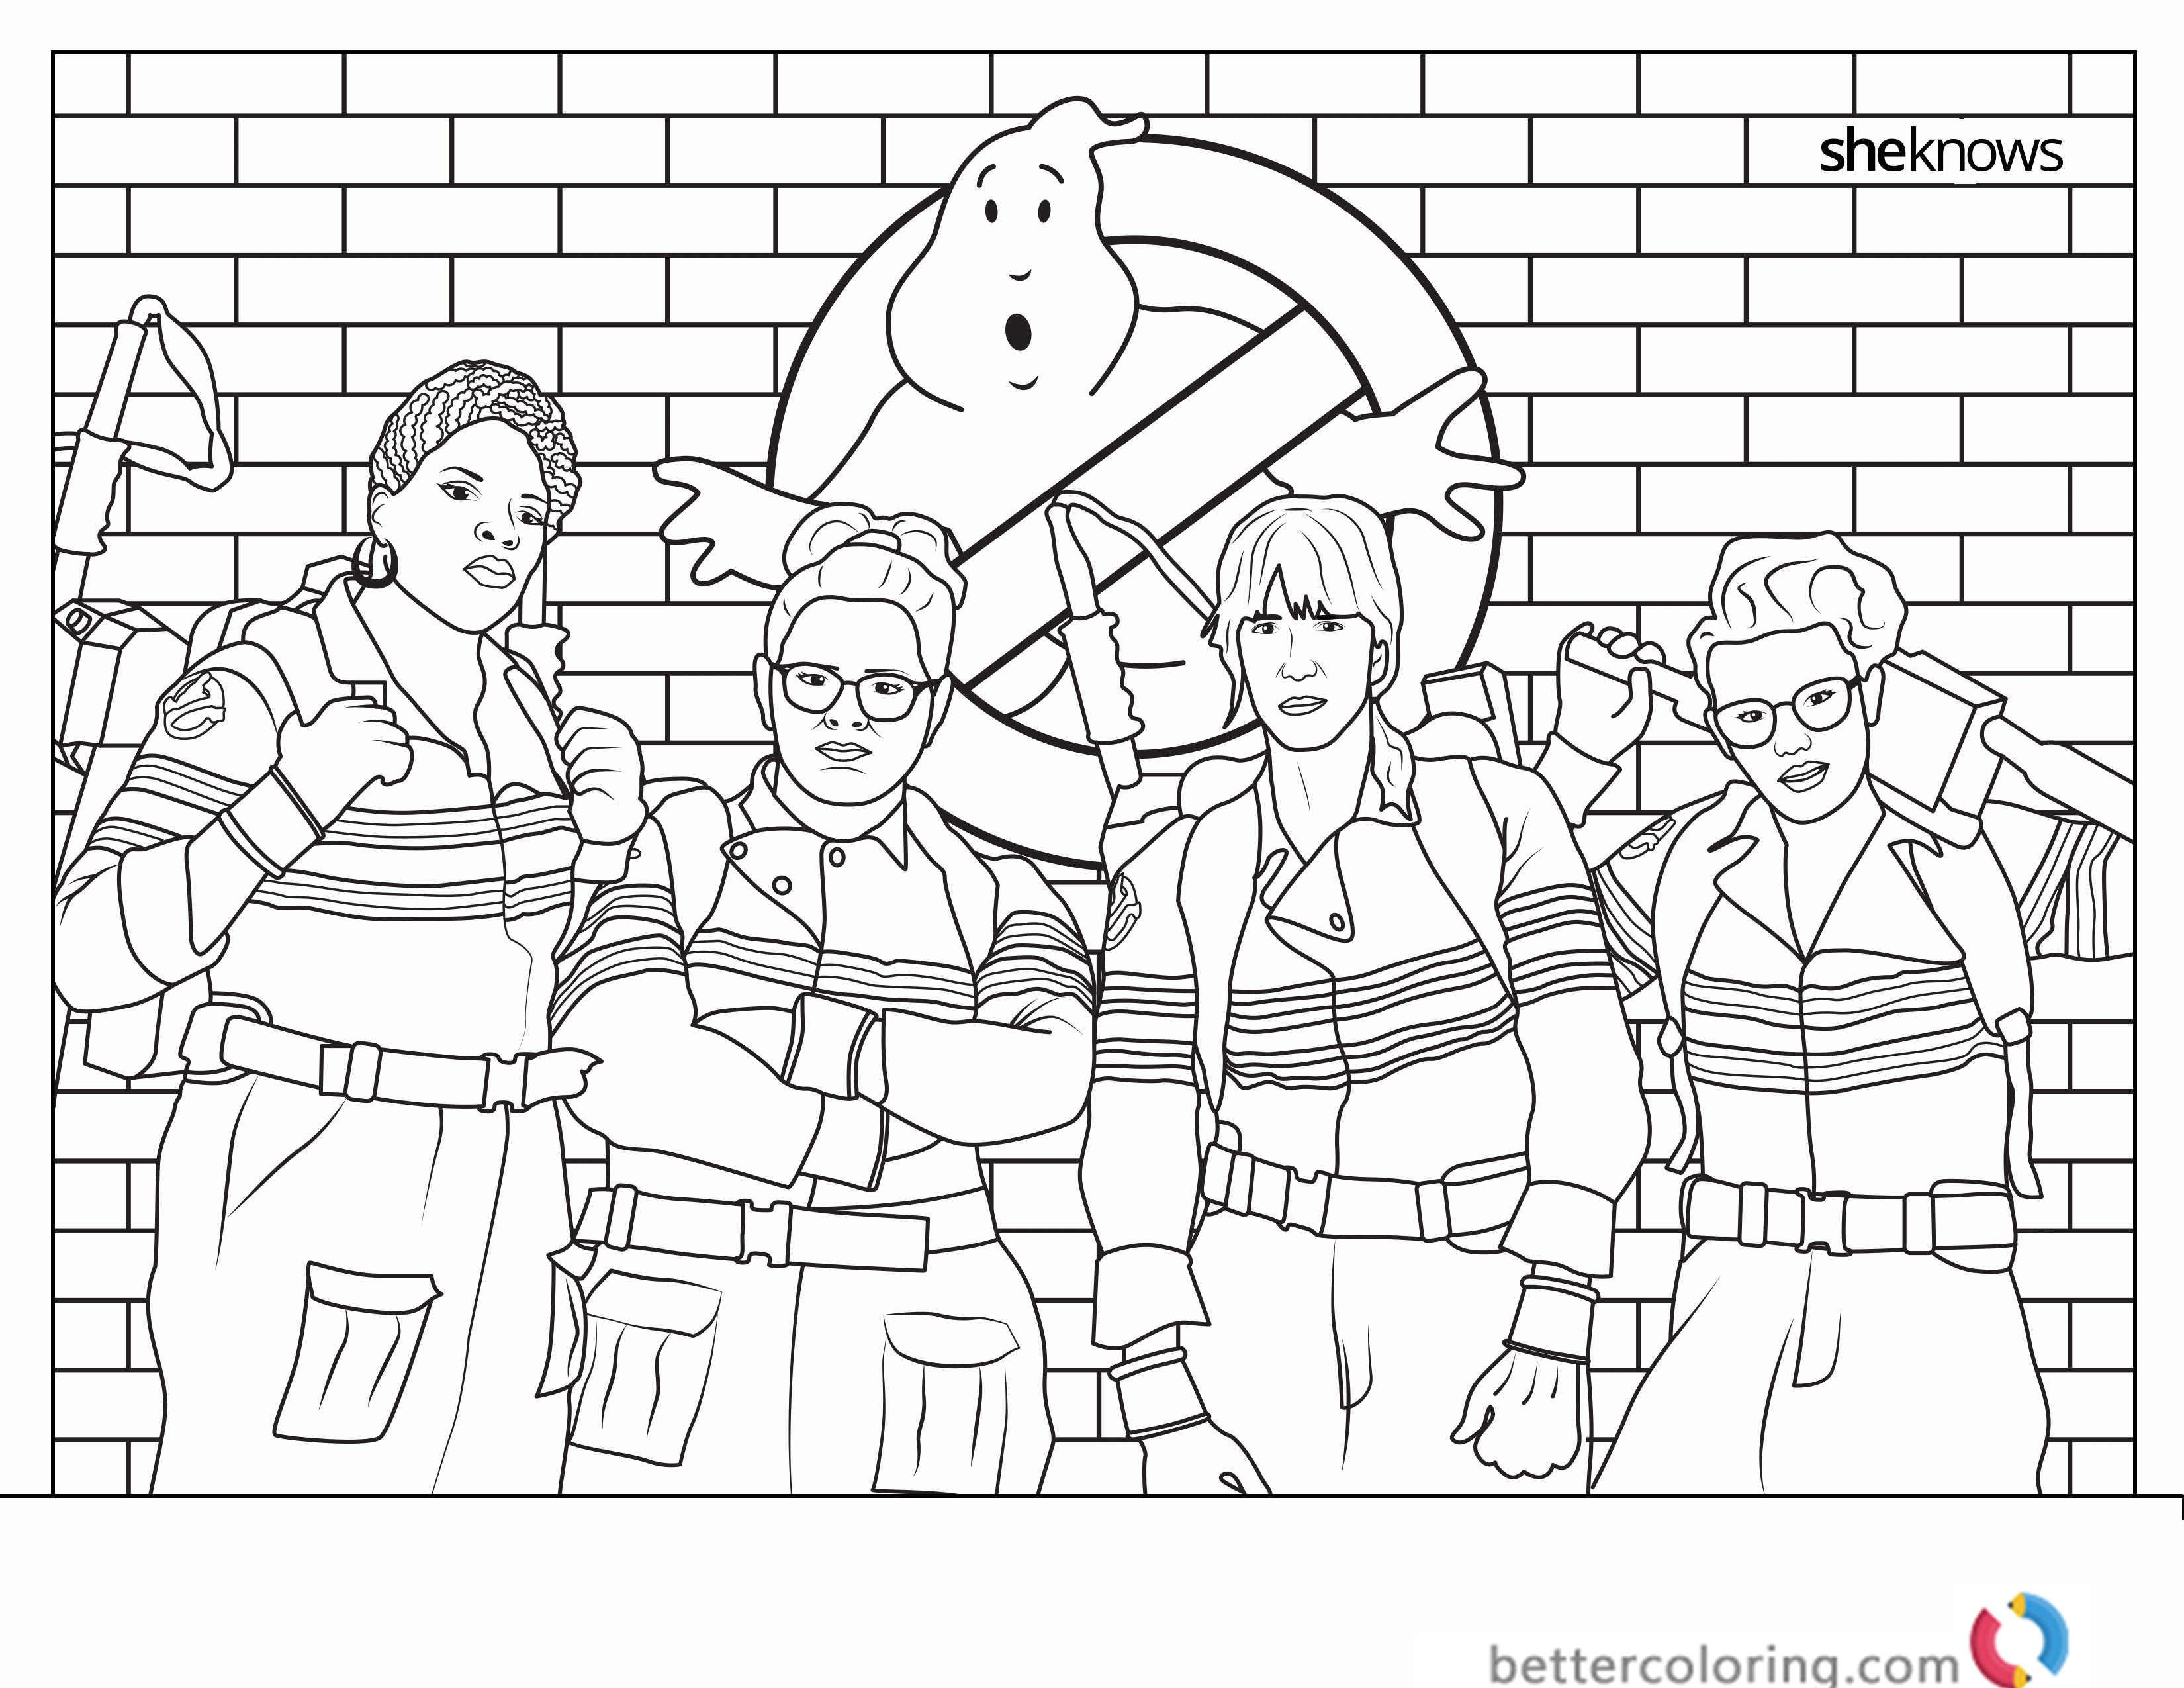 Ghostbusters Coloring Pages 06 Ghostbusters party